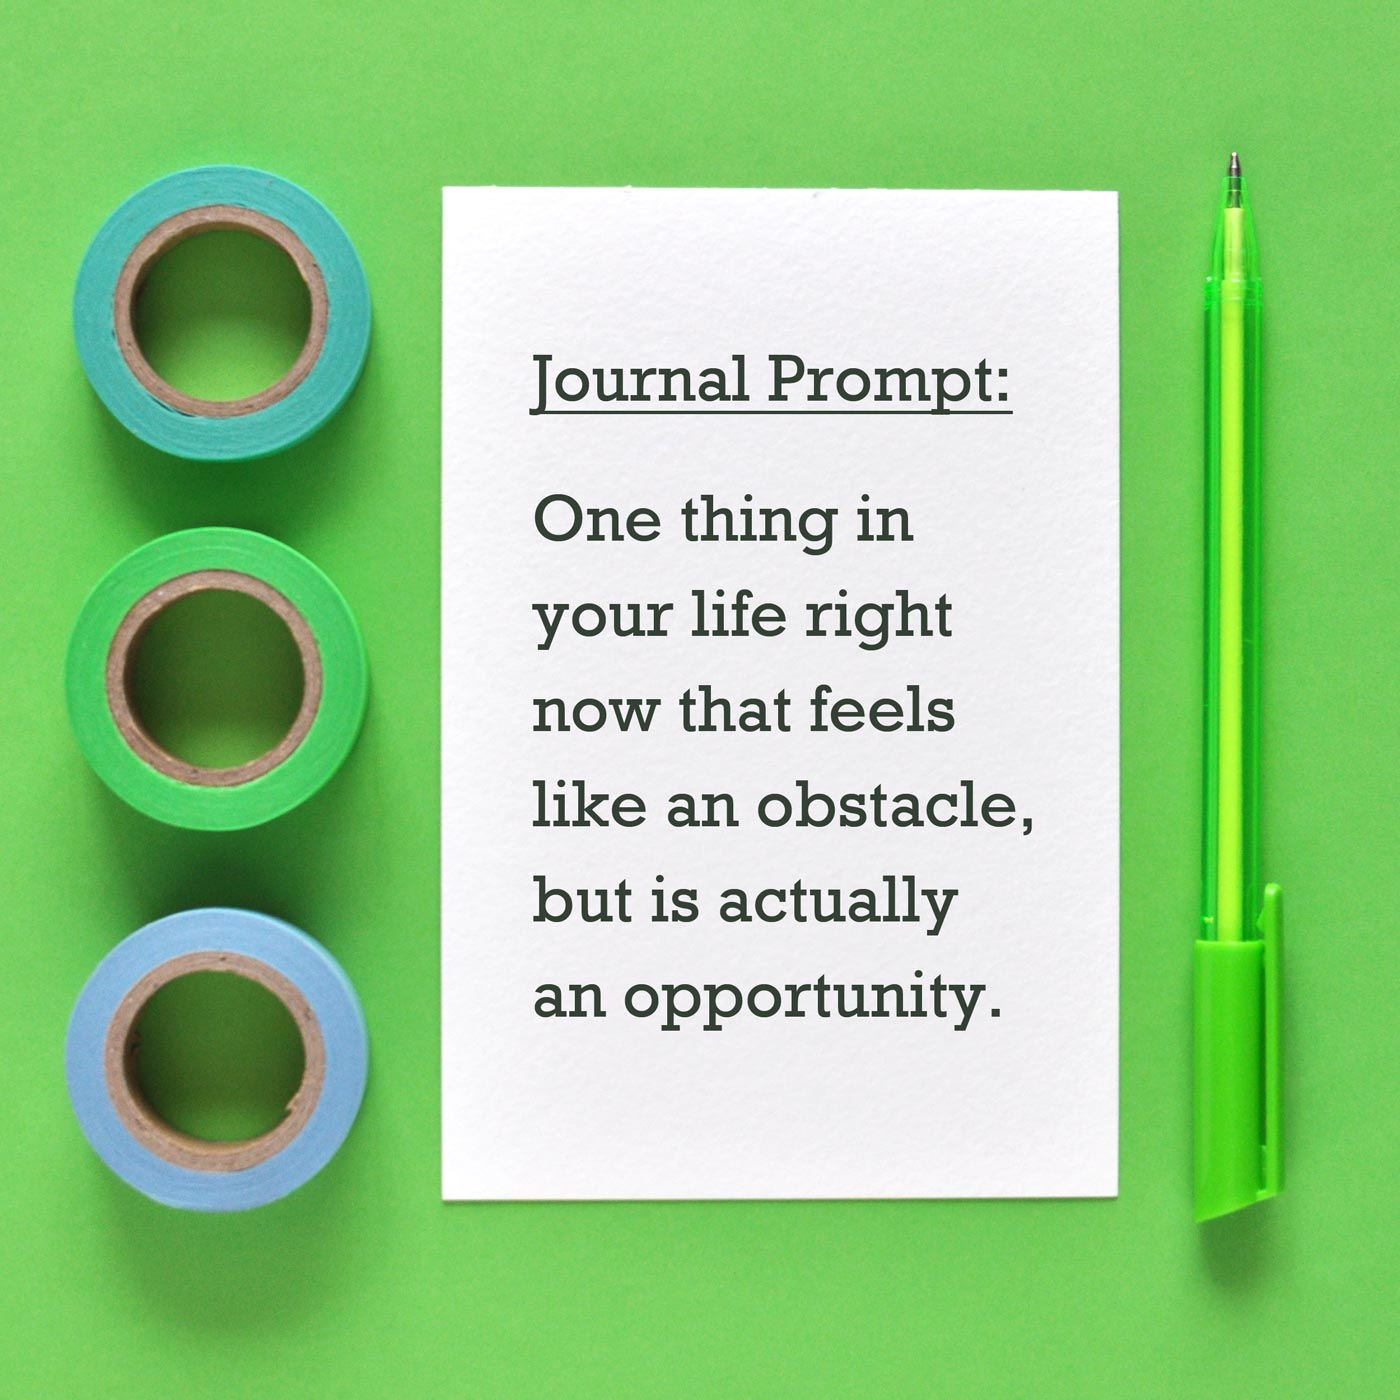 23-01-2018---Journal-prompt-by-Christie-Zimmer.jpg